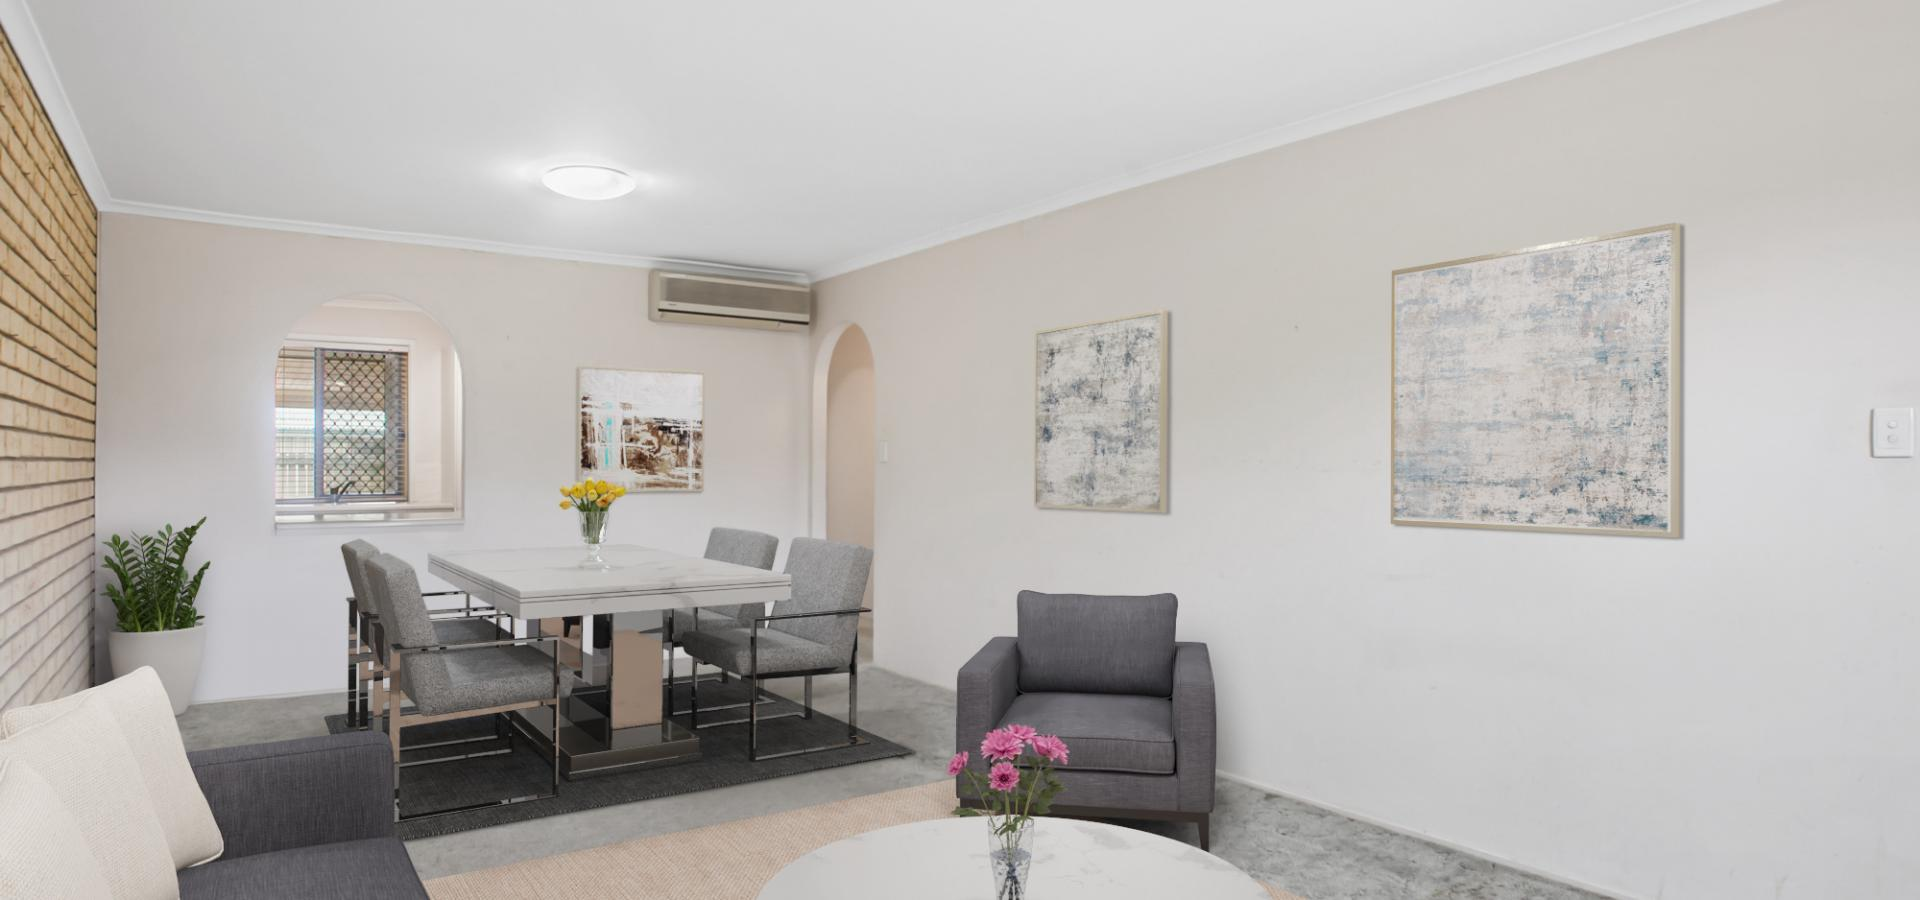 Great Opportunity - Beautifully Quiet Complex